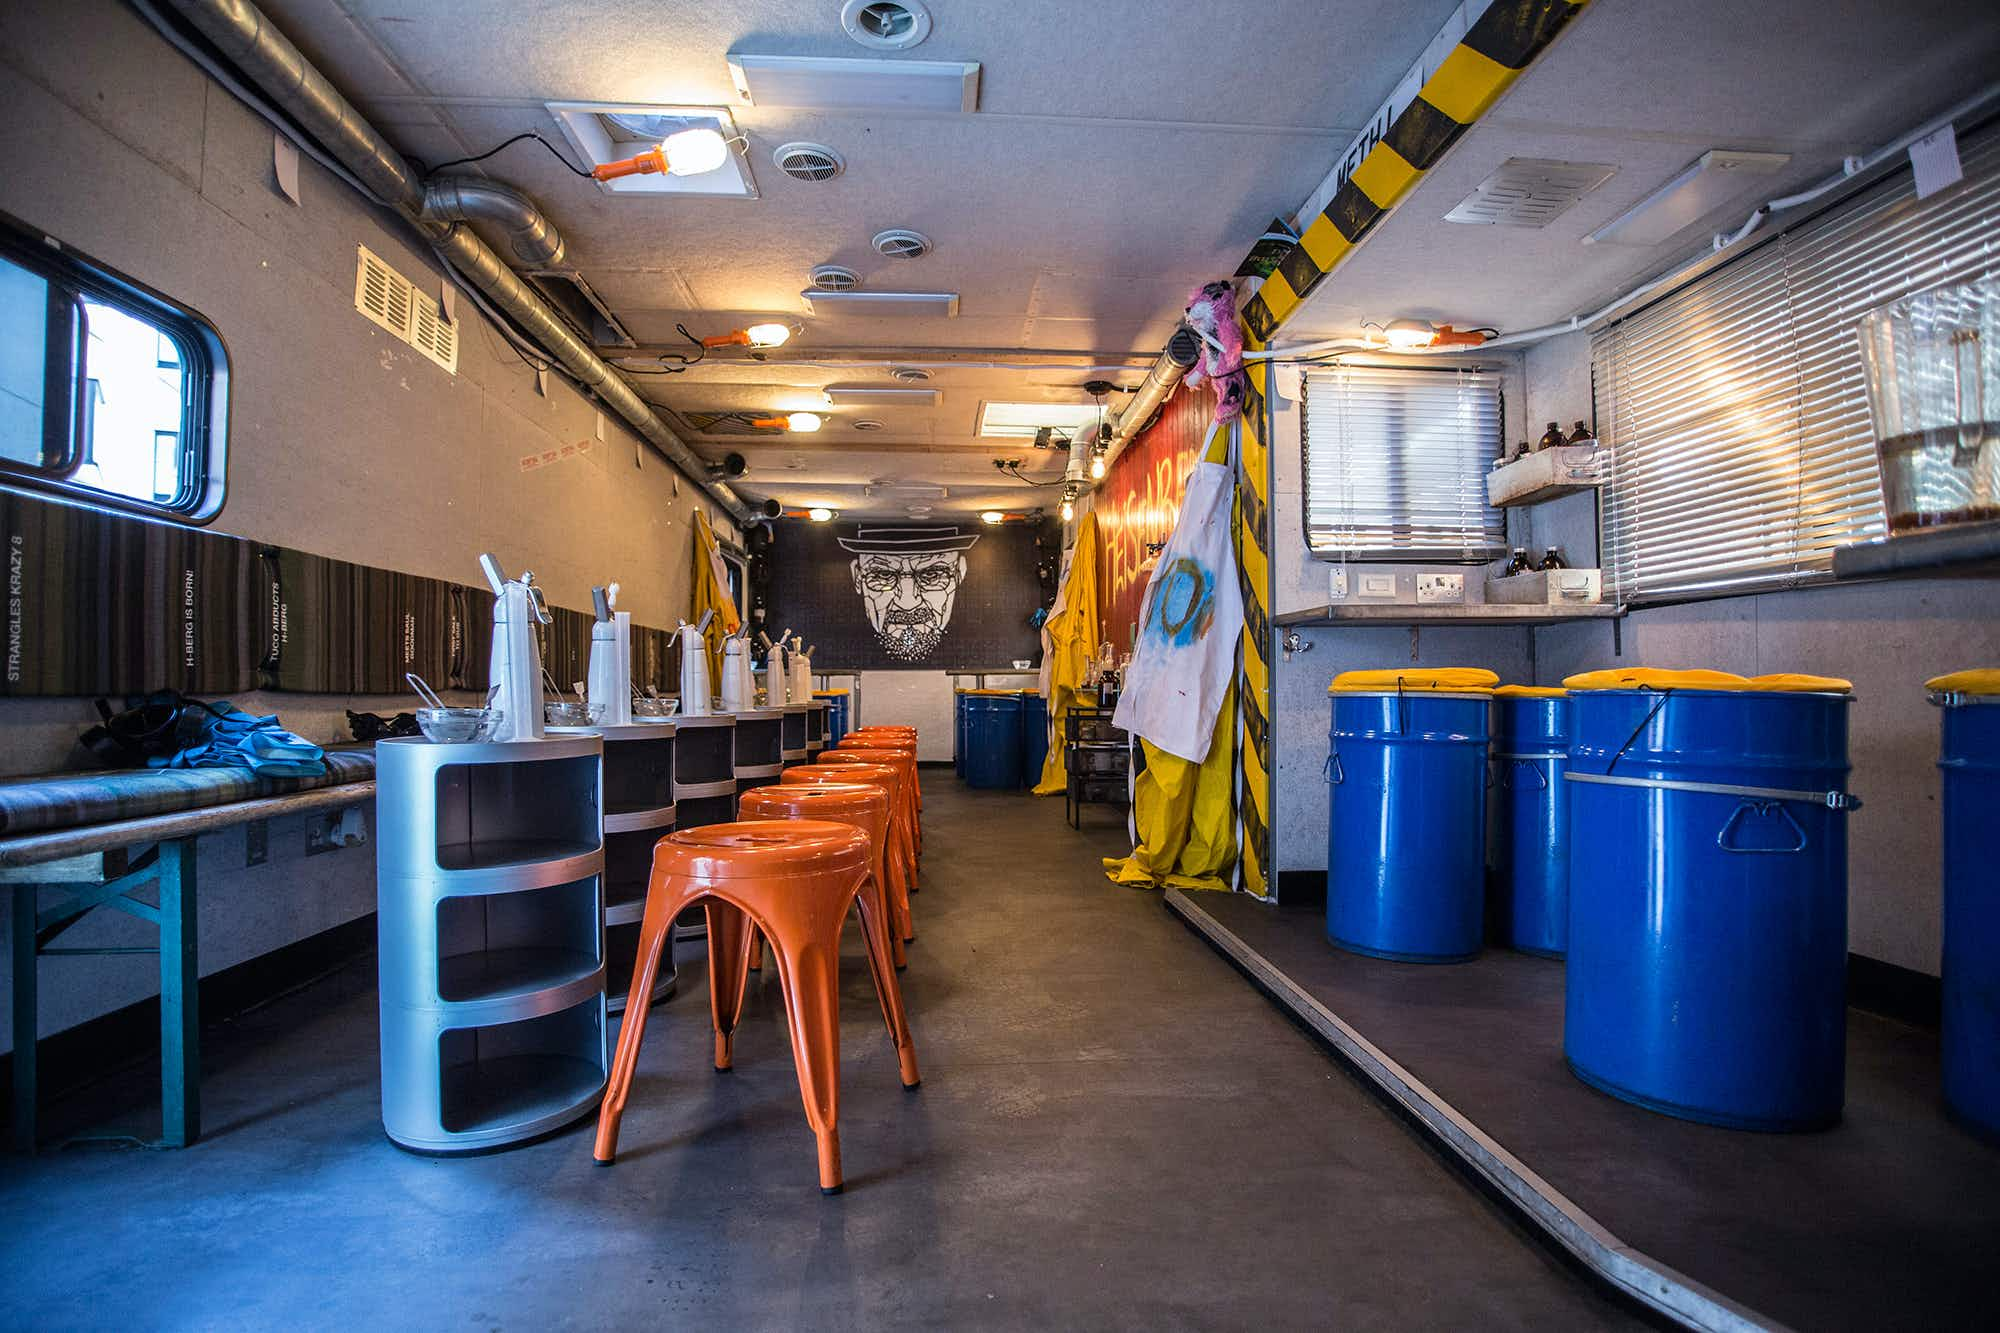 A Breaking Bad-inspired cocktail bar set inside an RV is opening in New York this summer